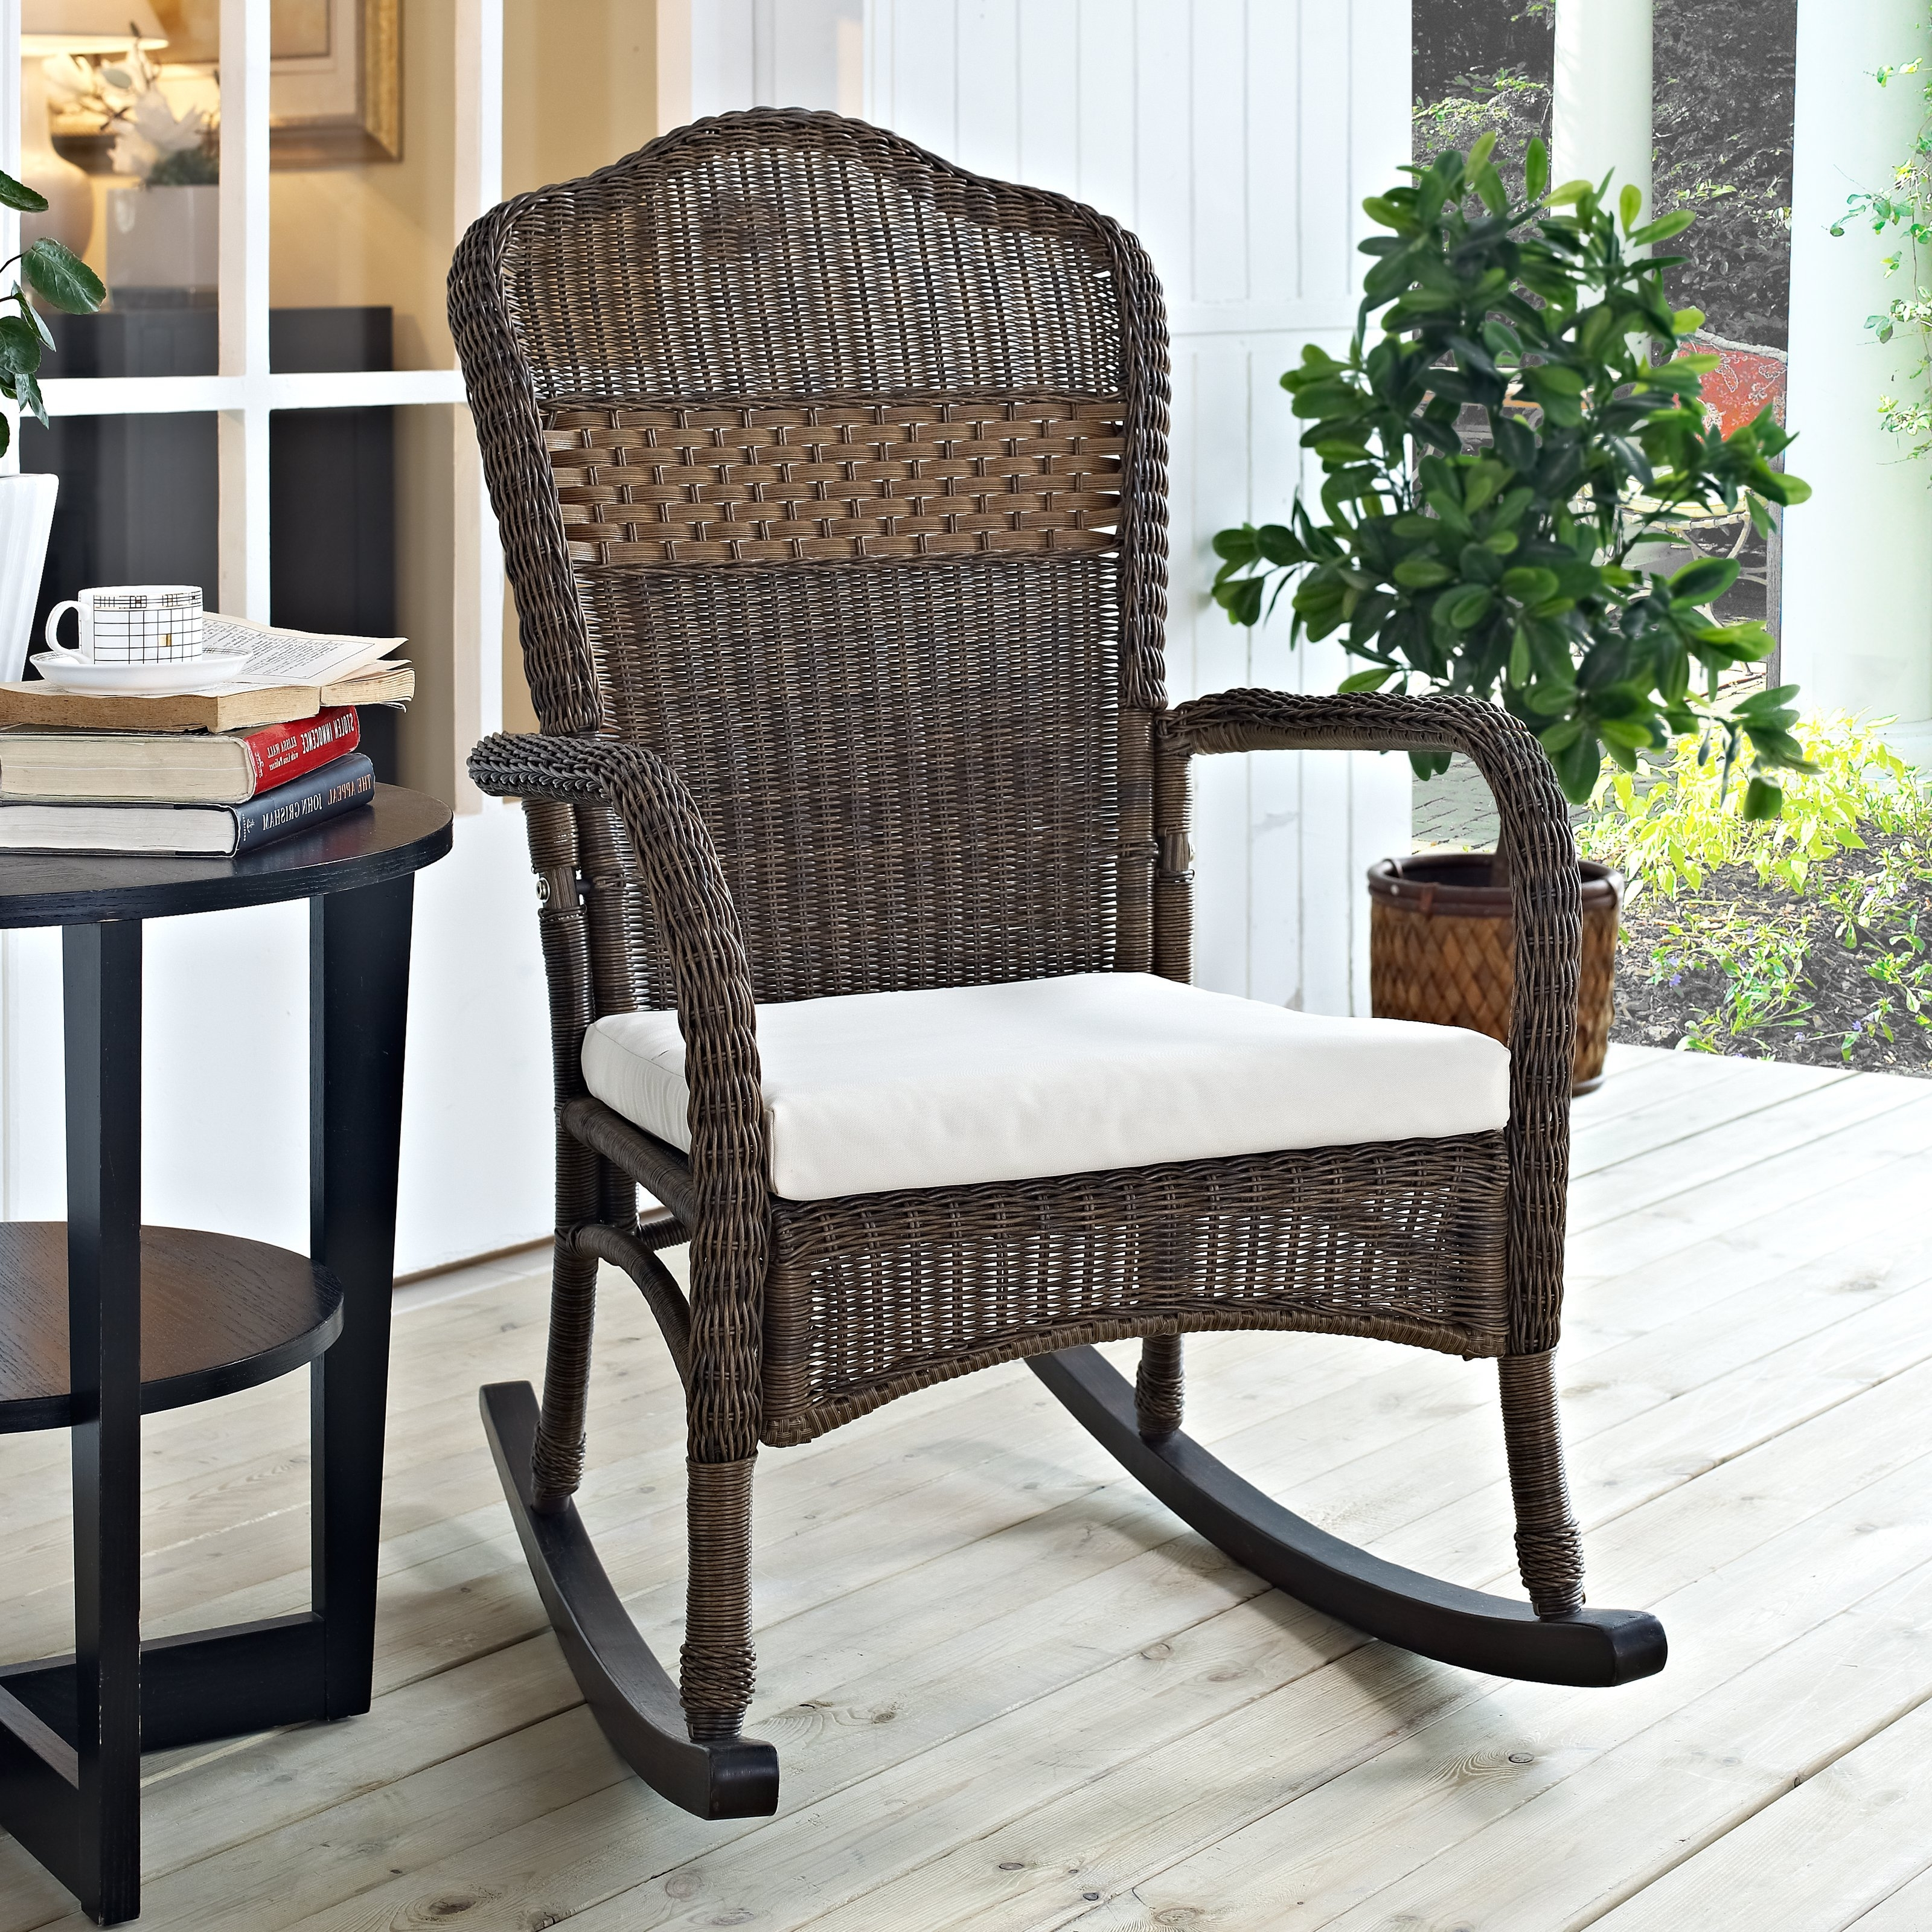 Fashionable Popular Patio Furniture Chairs Outdoor Rocking Top Porch Residence For Patio Rocking Chairs With Cushions (View 8 of 15)